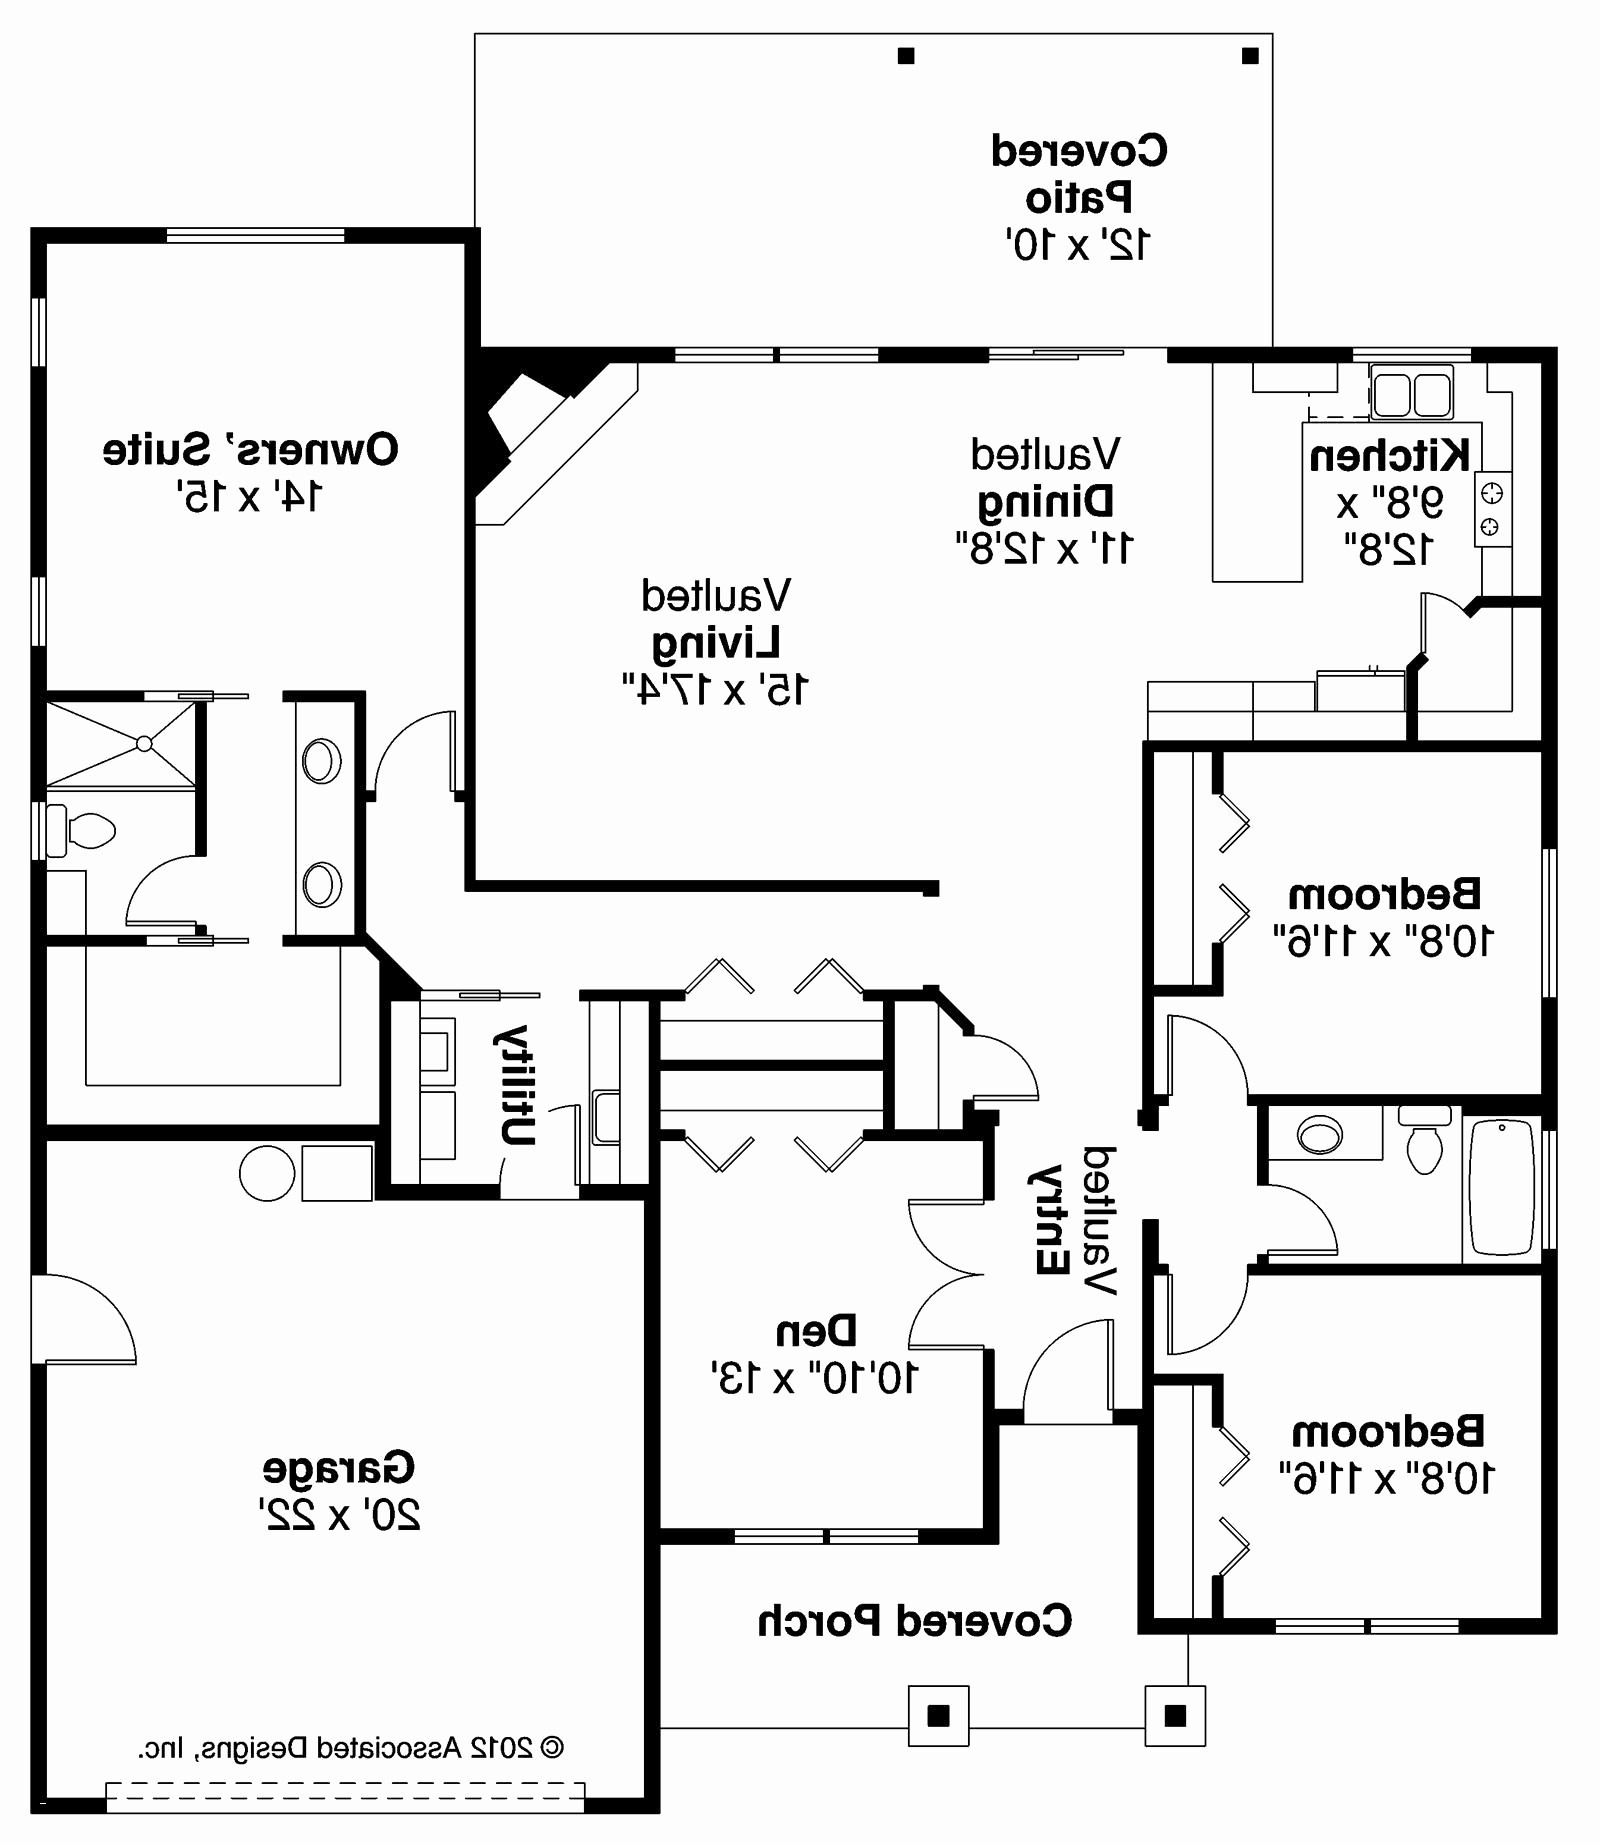 kitchen wiring diagram Collection-kitchen electrical wiring diagram Collection kitchen wiring diagram Download House Wiring Diagram Electrical Floor Plan DOWNLOAD Wiring Diagram 2-i